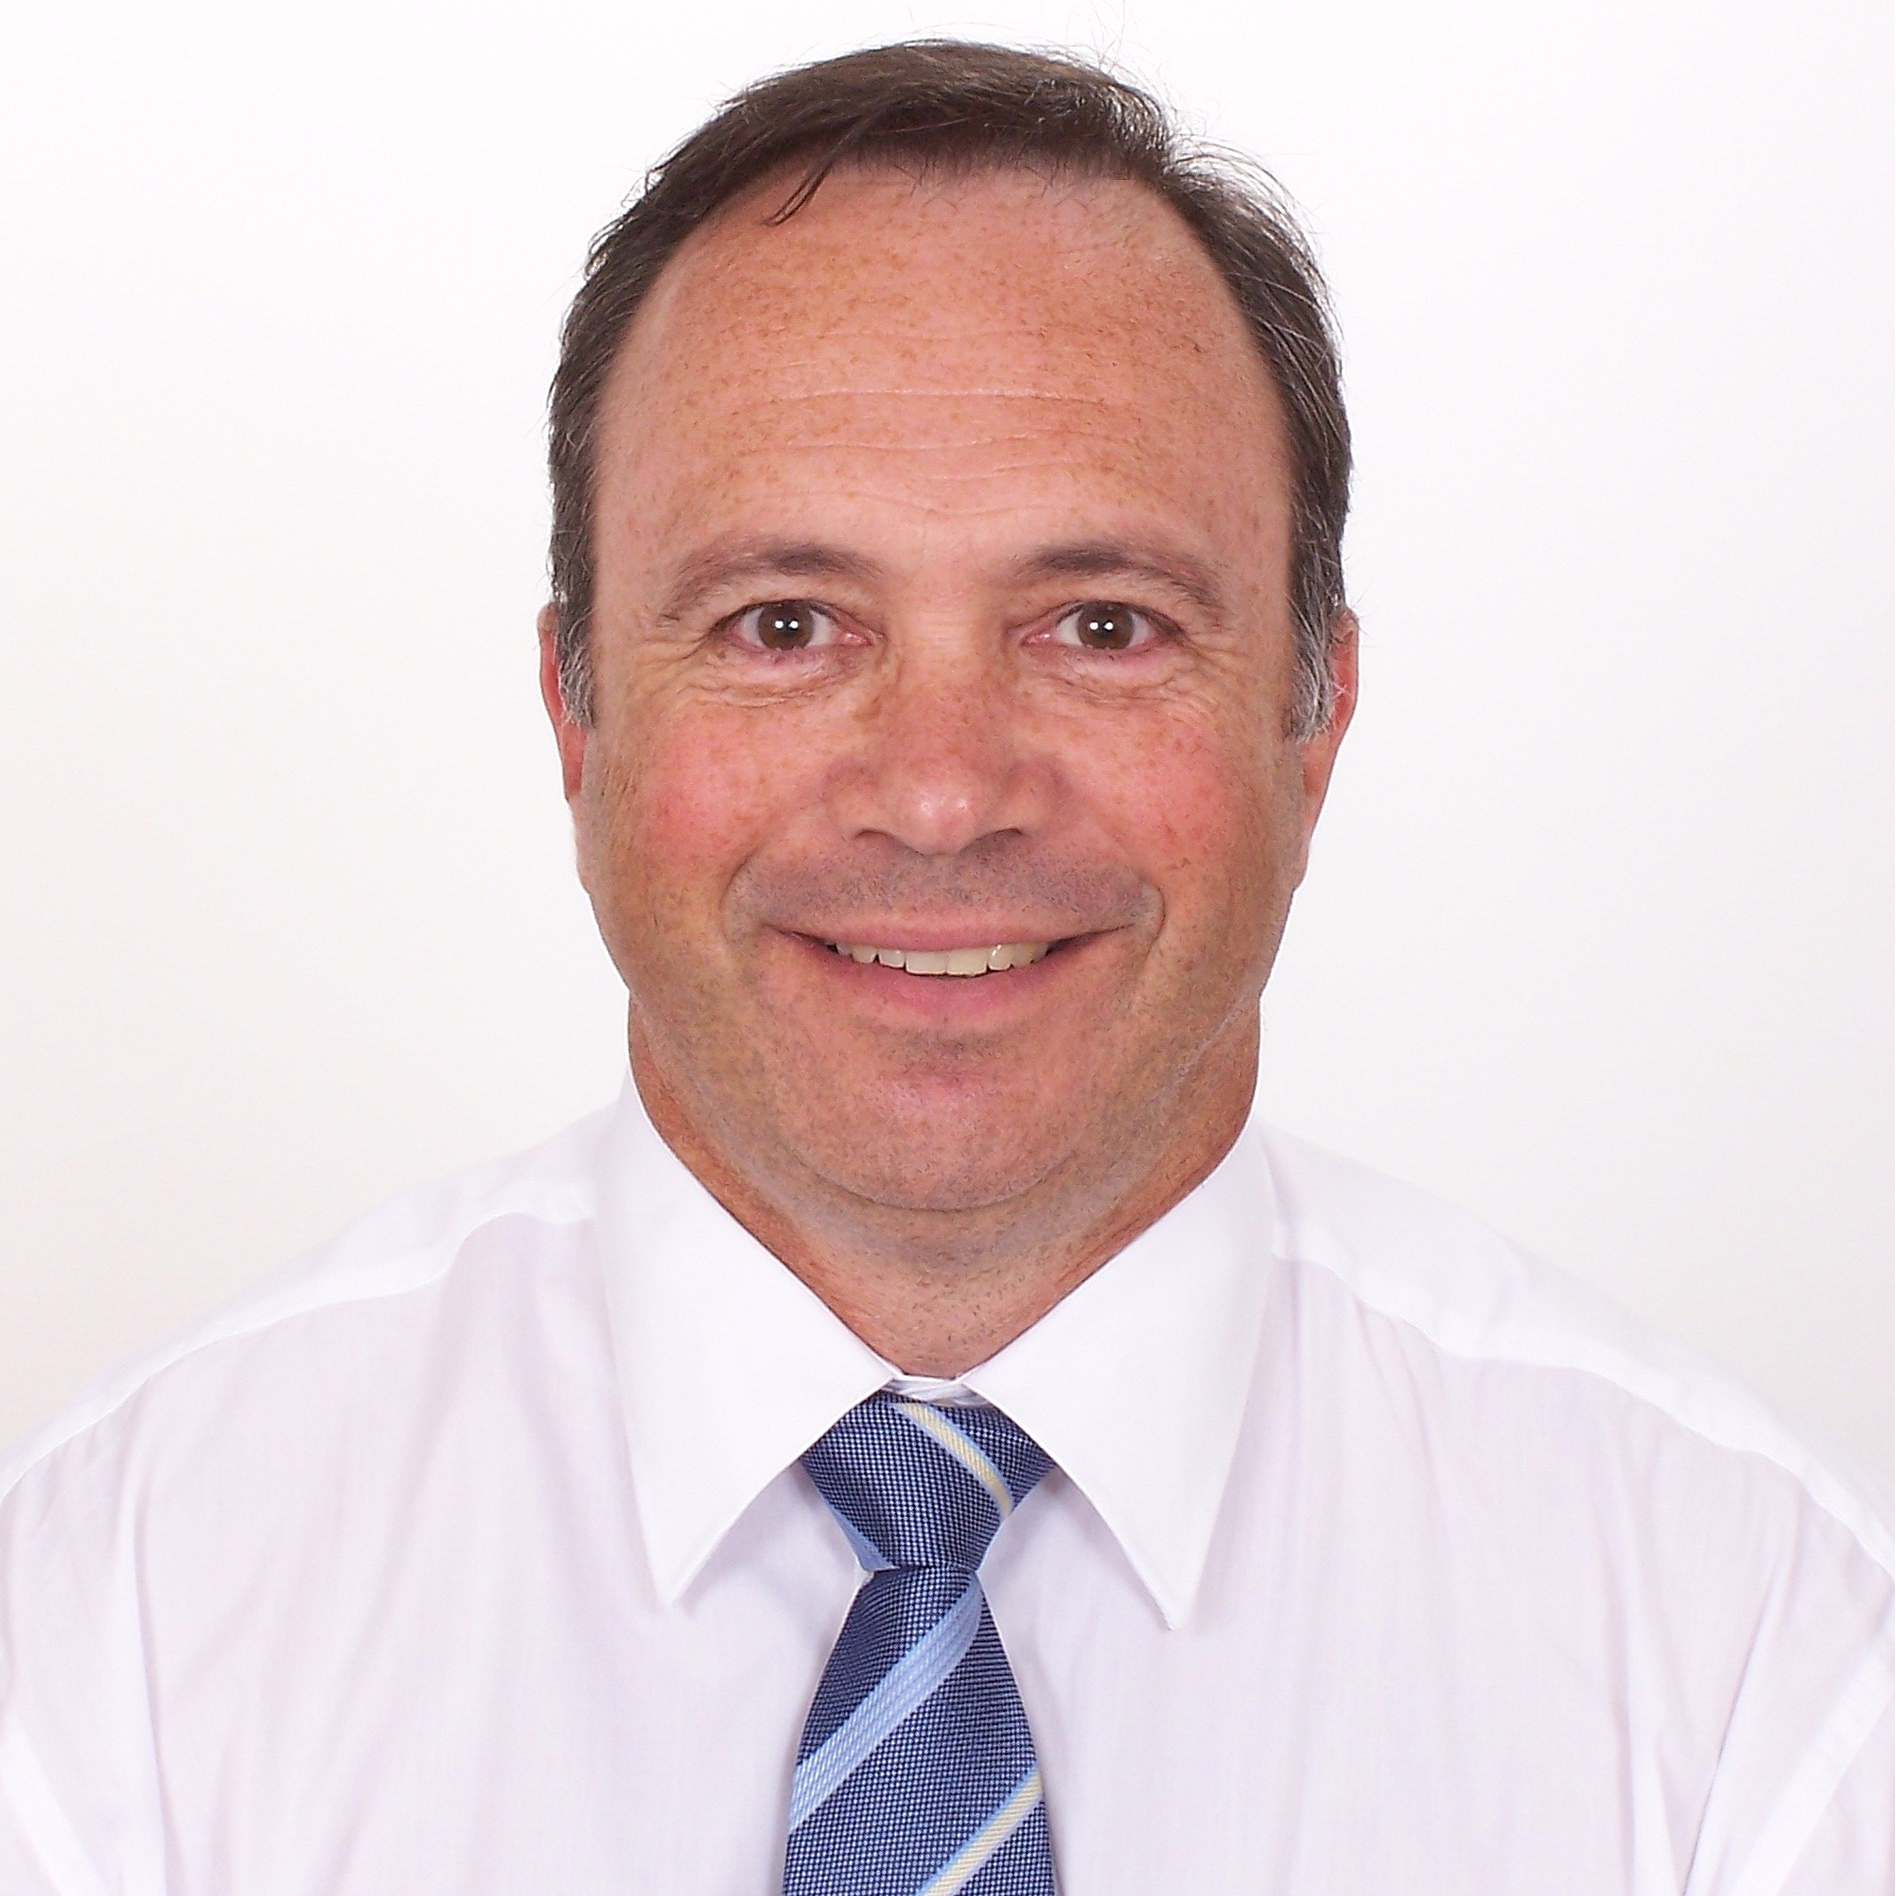 Wessel Witthuhn, Director of Construction & Development -Global Hospitality at Drees & Sommer